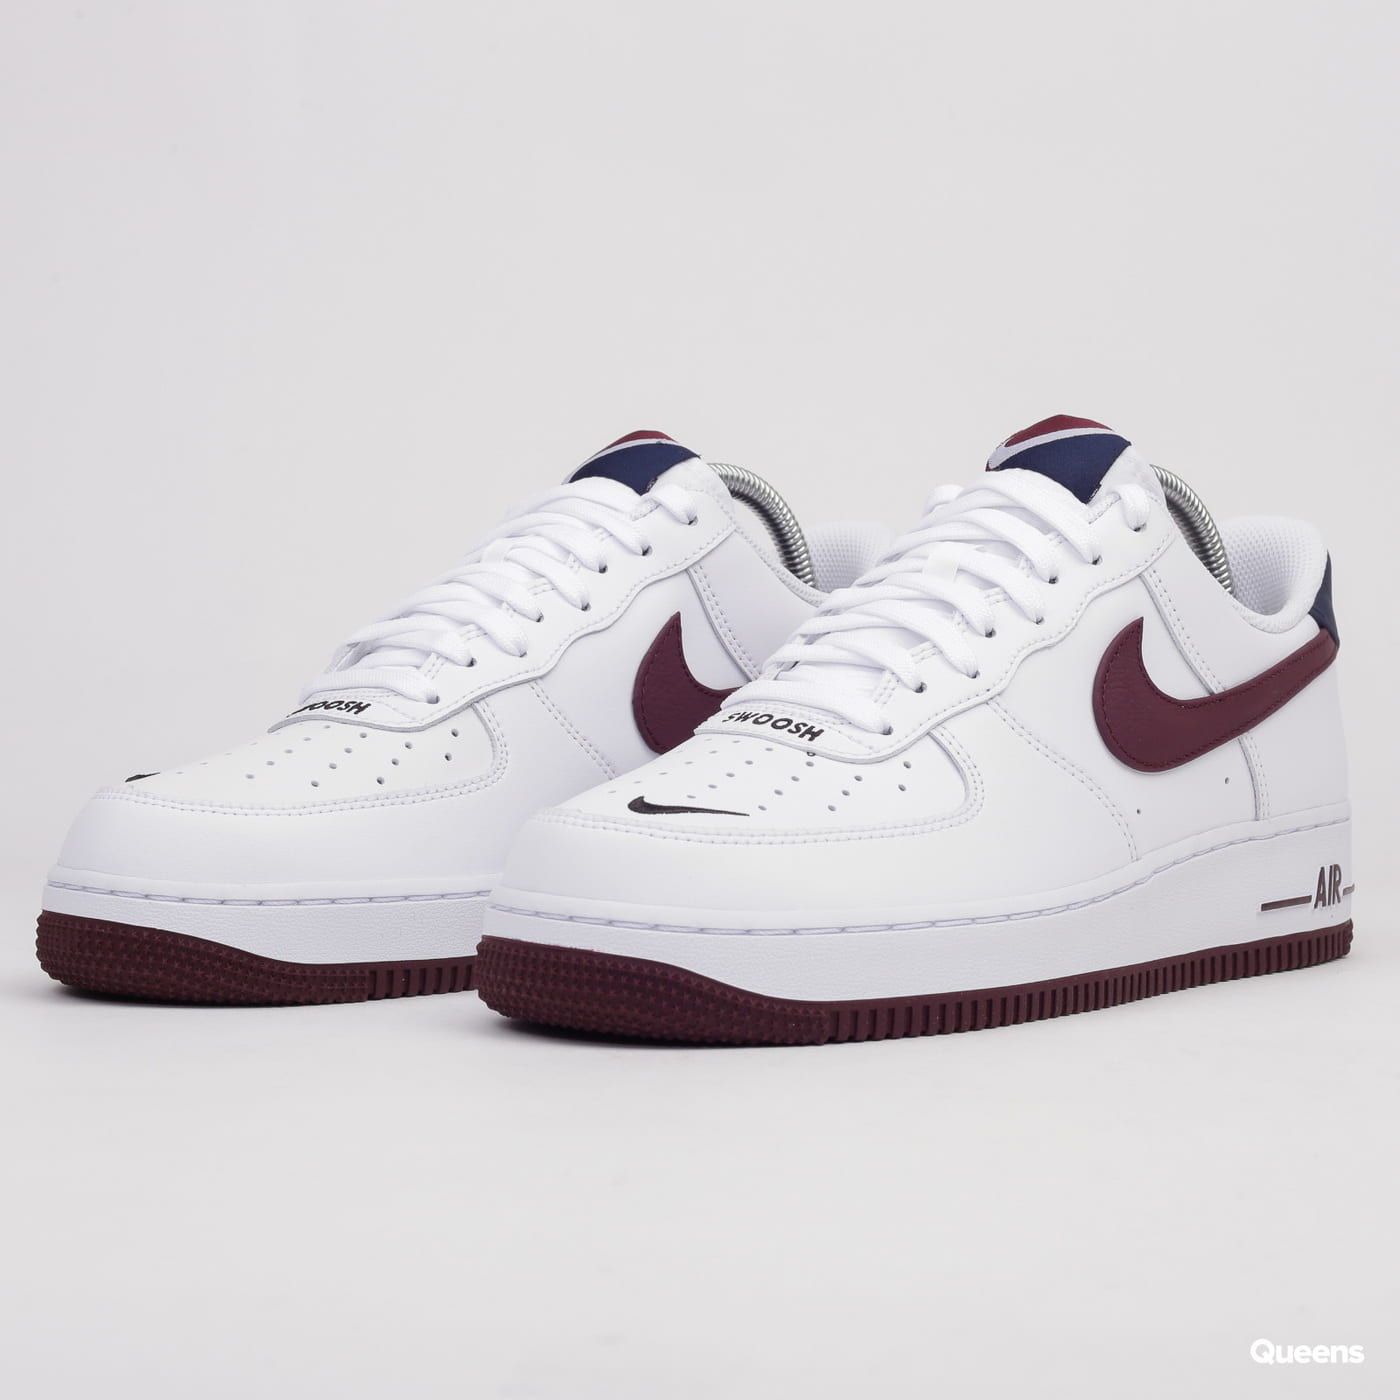 Nike Air Force 1 '07 LV8 4 white night maroon obsidian